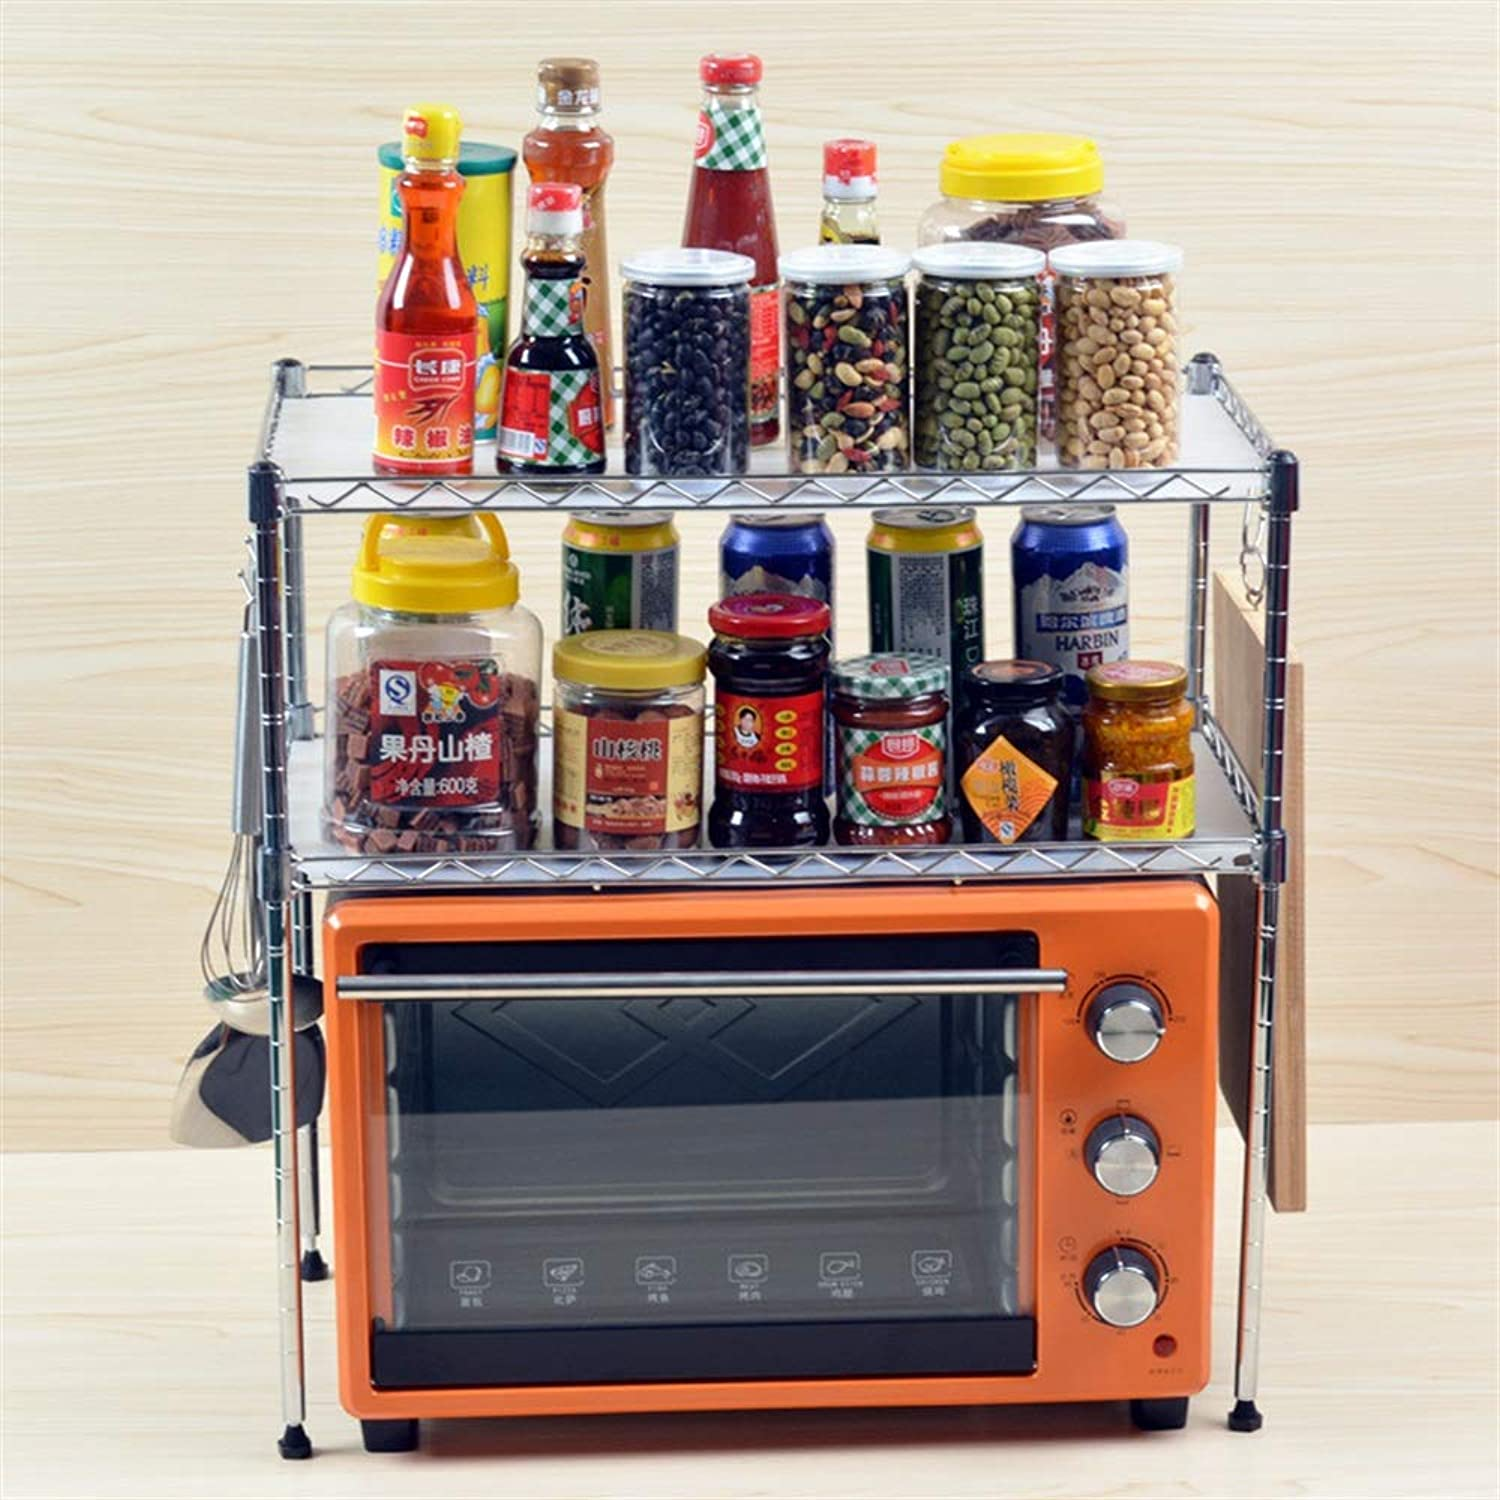 Space Saving Storage Racks Kitchen Shelf Microwave Oven Rack Kitchen Utensils Two-Layer Seasoning Storage Rack (Size   A)